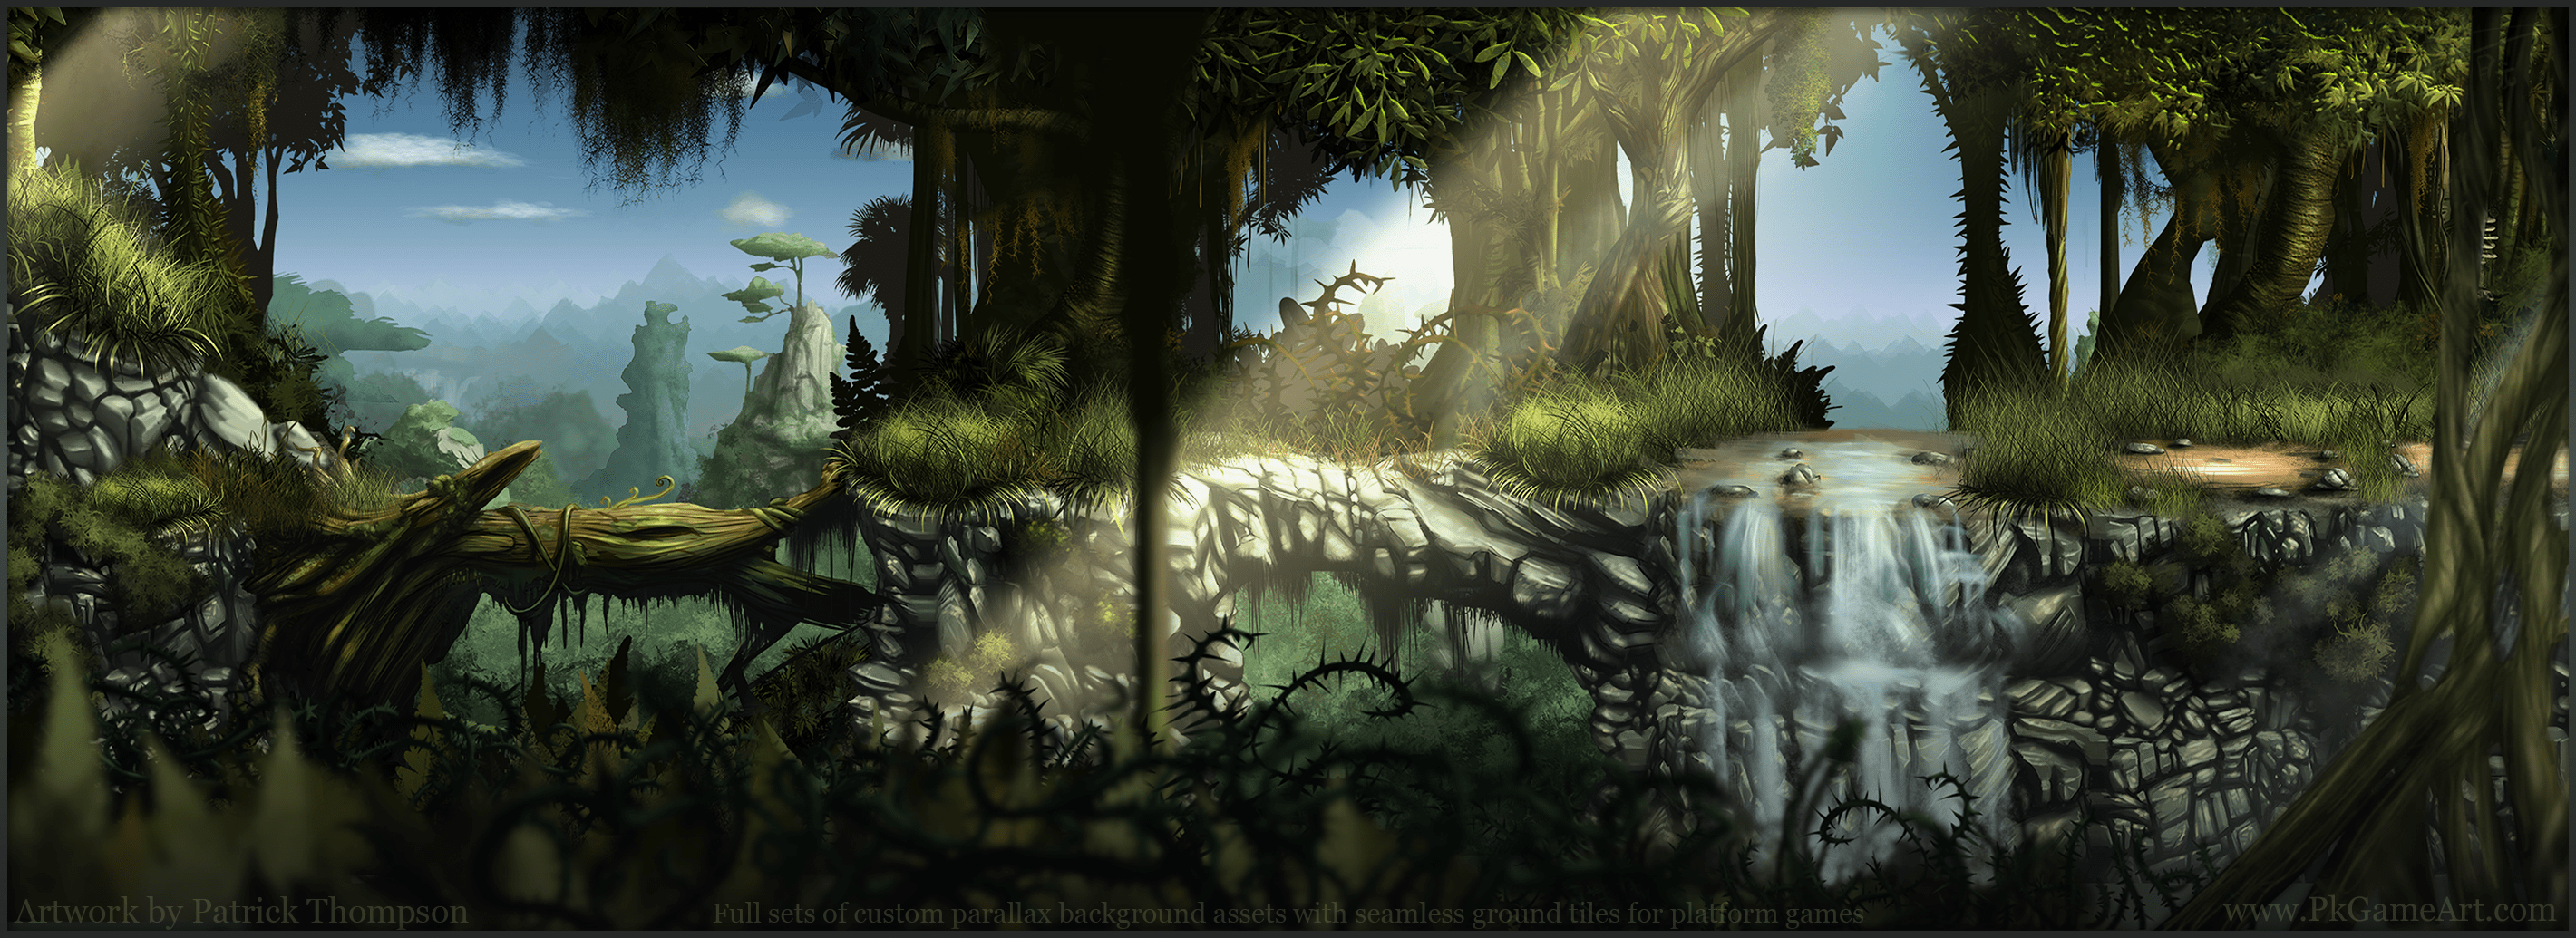 BG s   Environments   PK Game Art   Illustration game background parallax forest jungle seamless tiles bridges platform art  illustration pkgameart